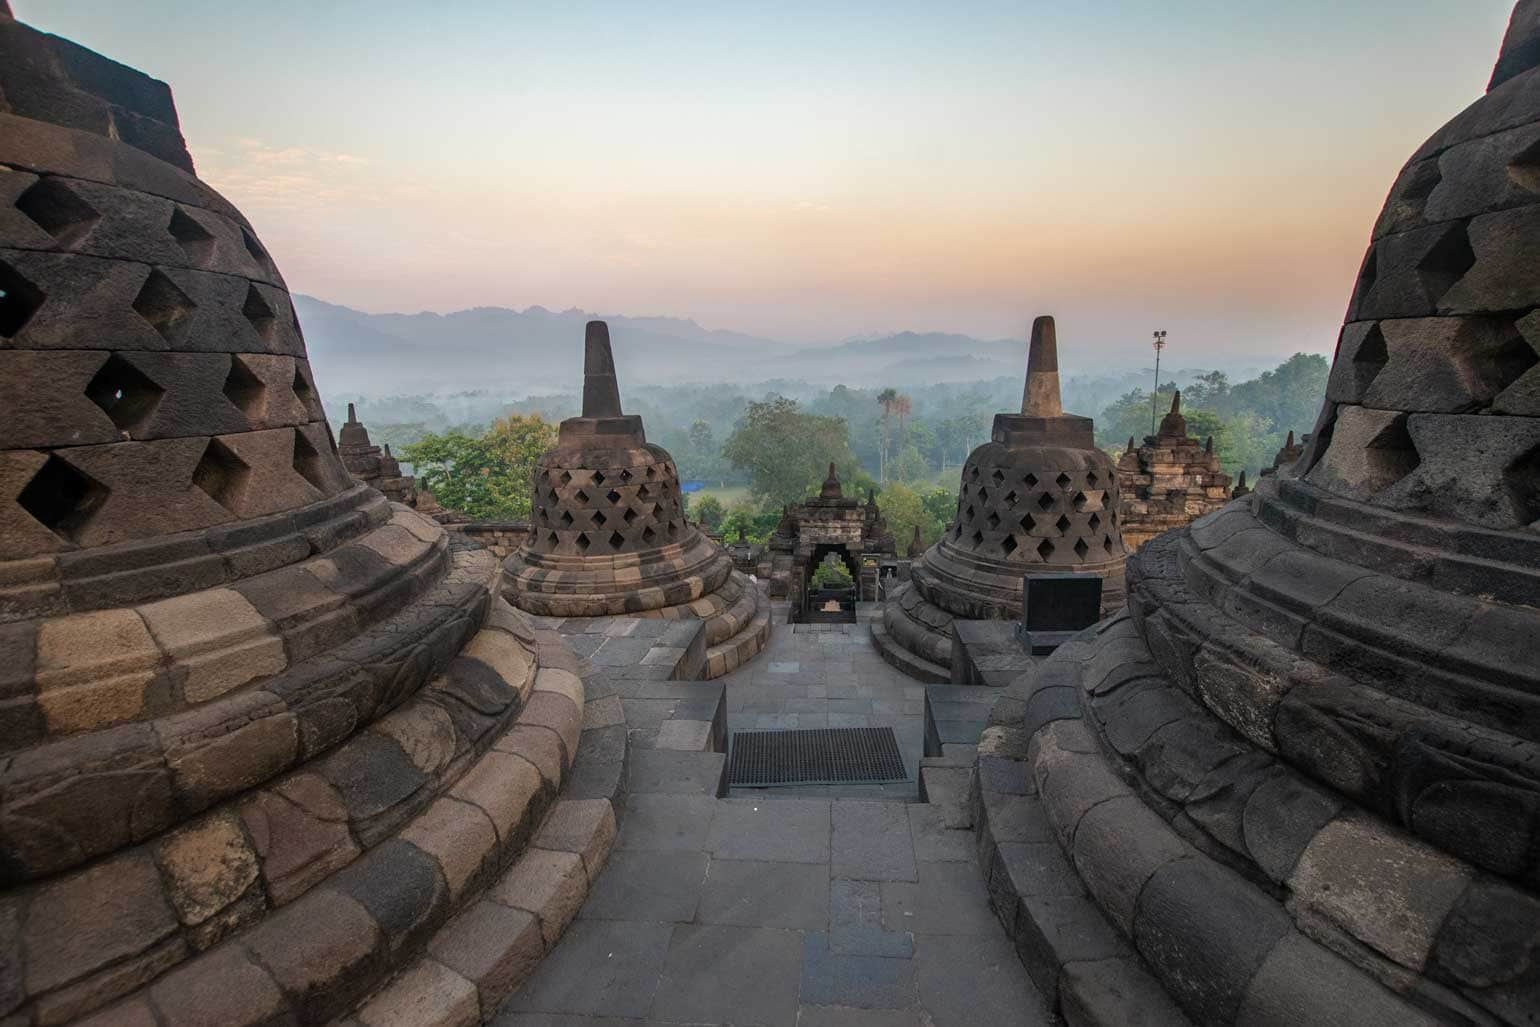 after sunrise at Borobudur